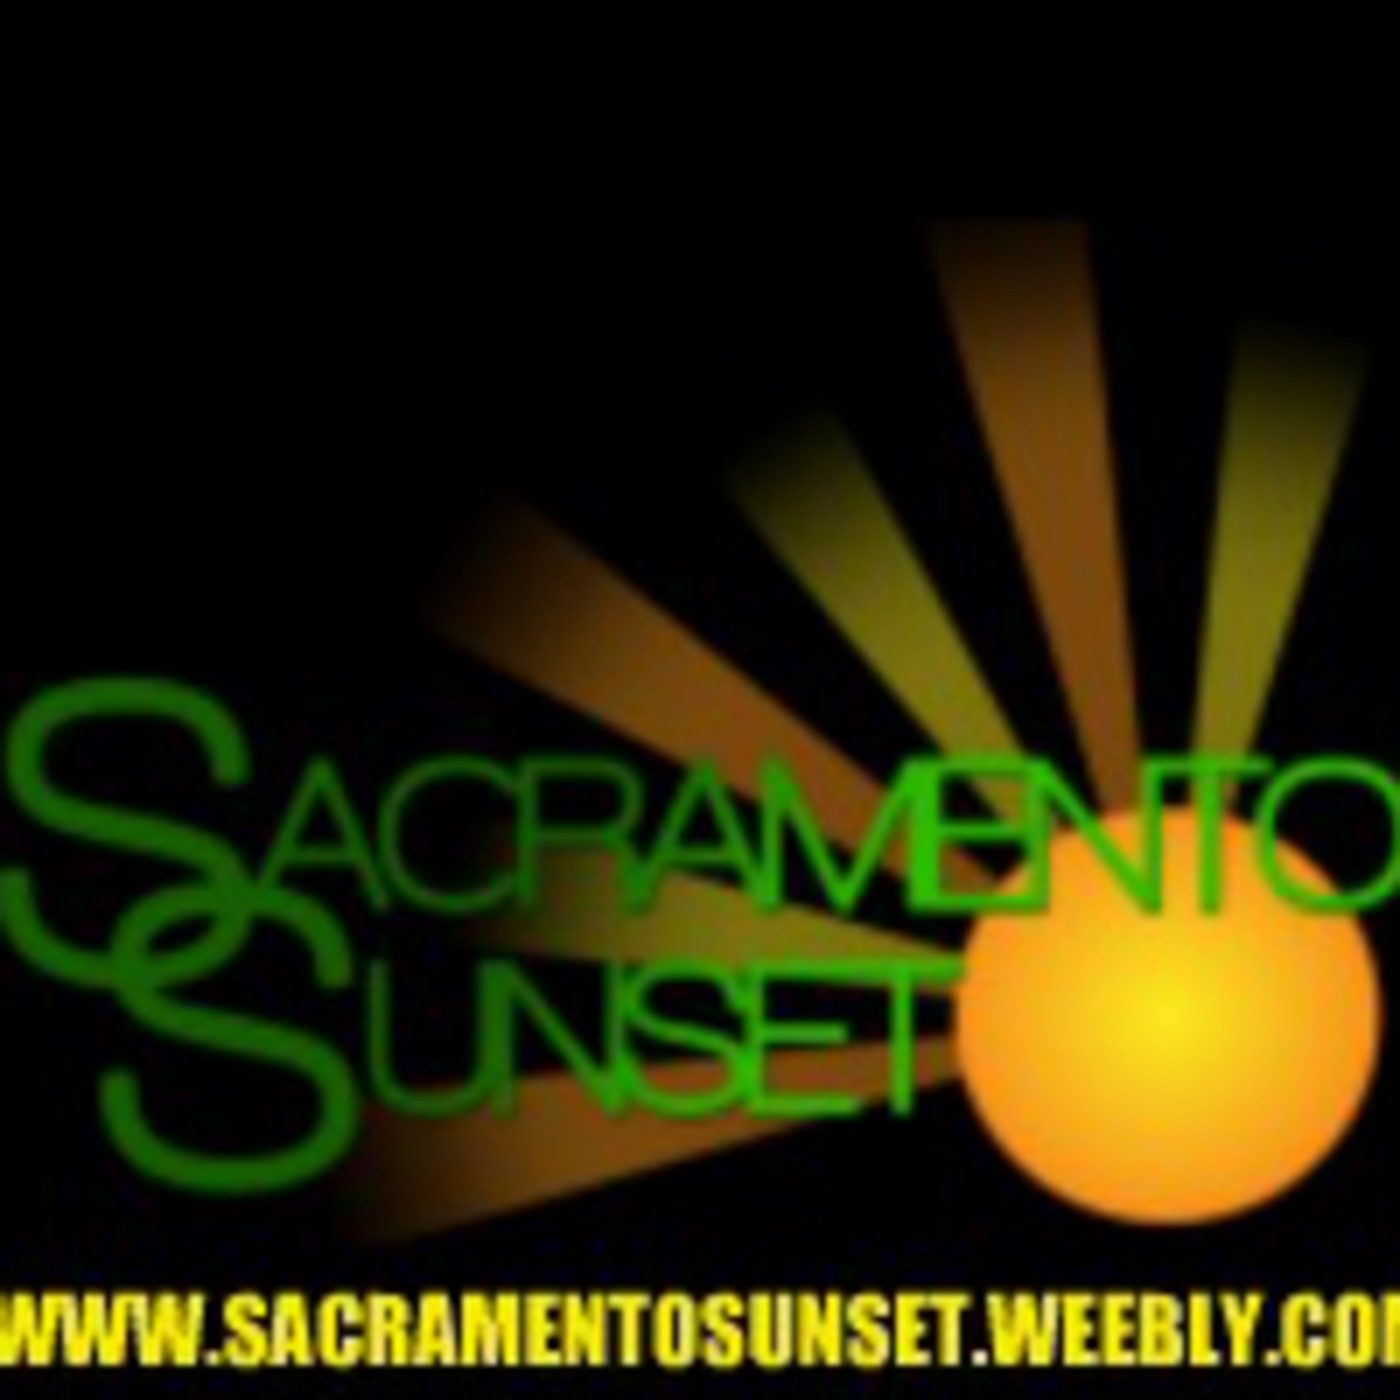 SACRAMENTO SUNSET's Podcast